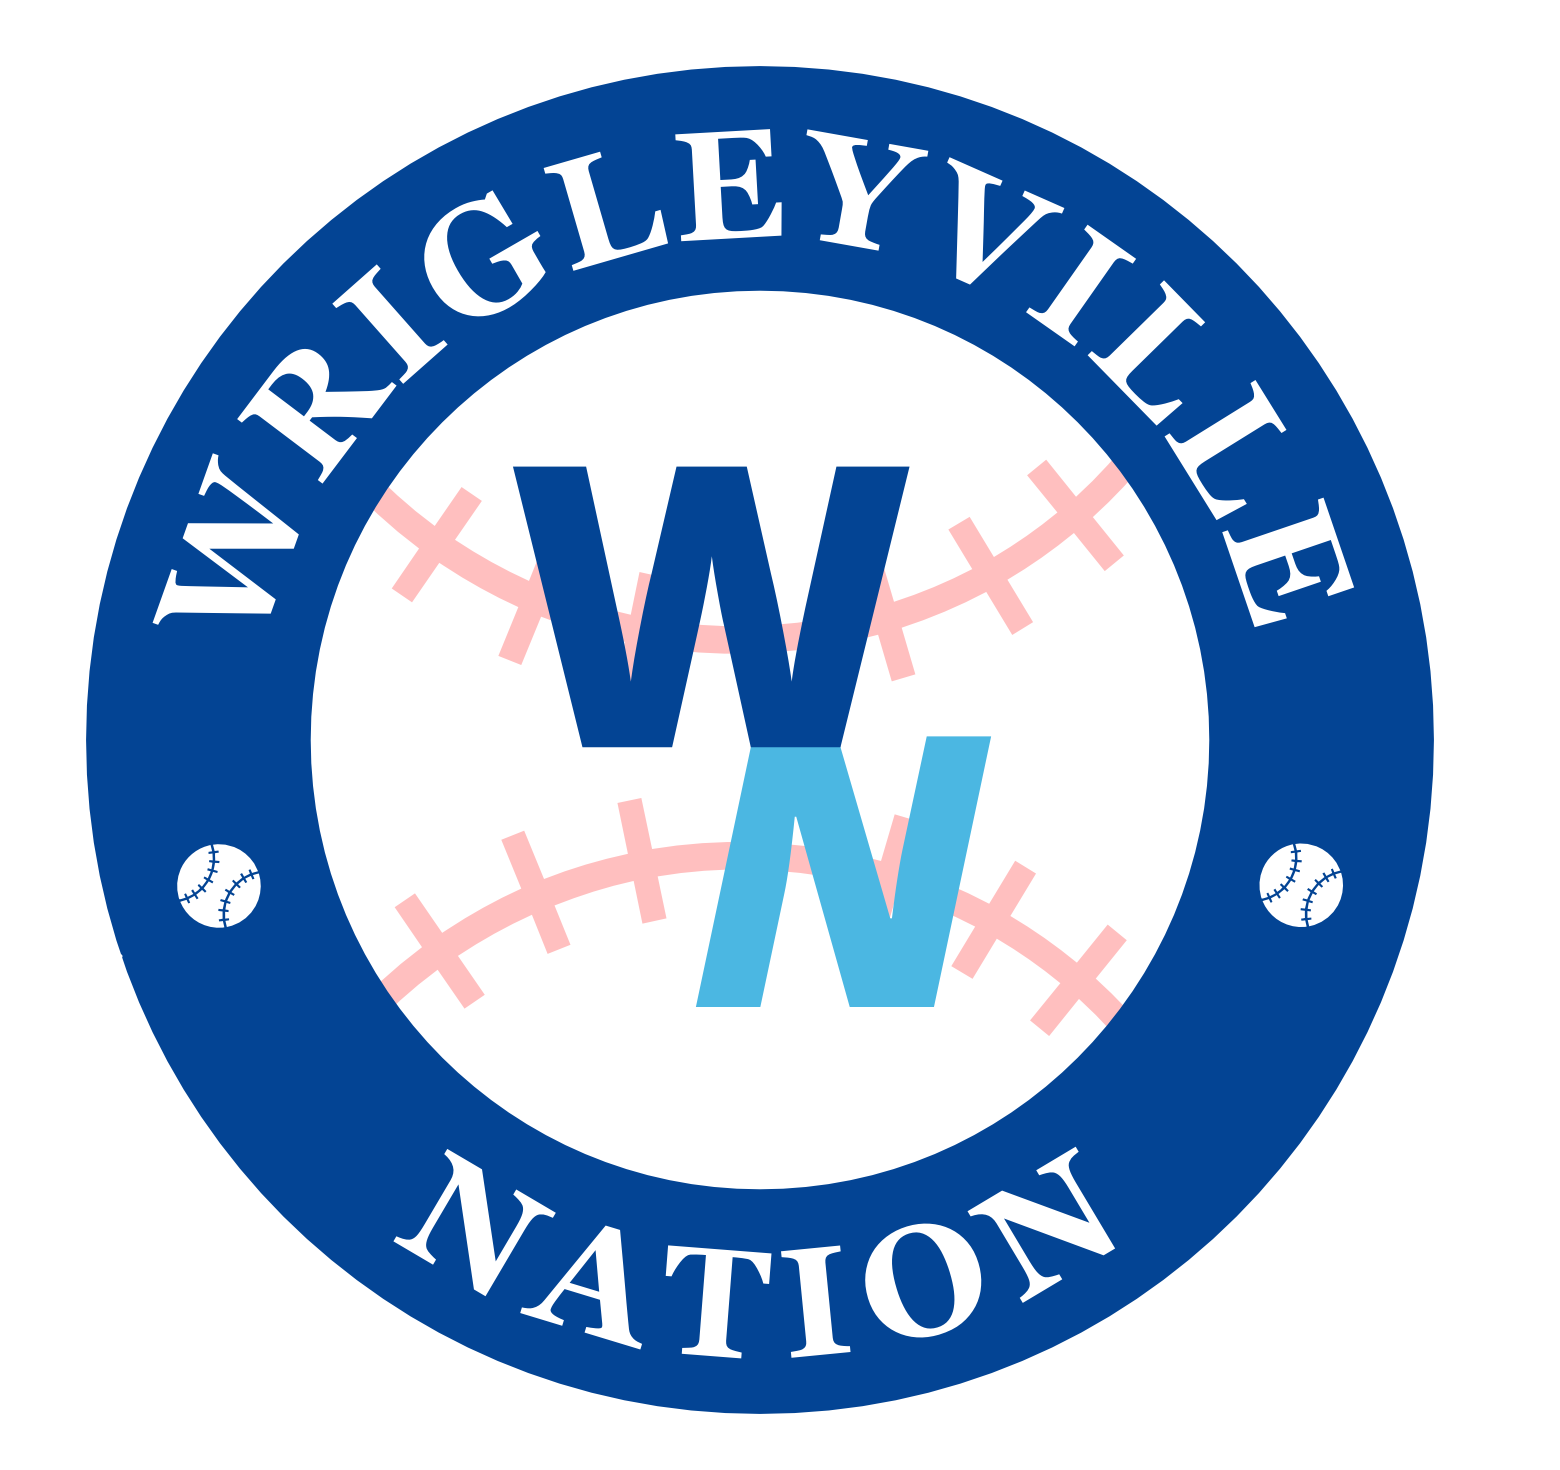 Wrigleyville Nation Ep 213 - Guest: Matthew Trueblood, Cubs Implode On Final Homestand of Season, Postmortem, & More show art